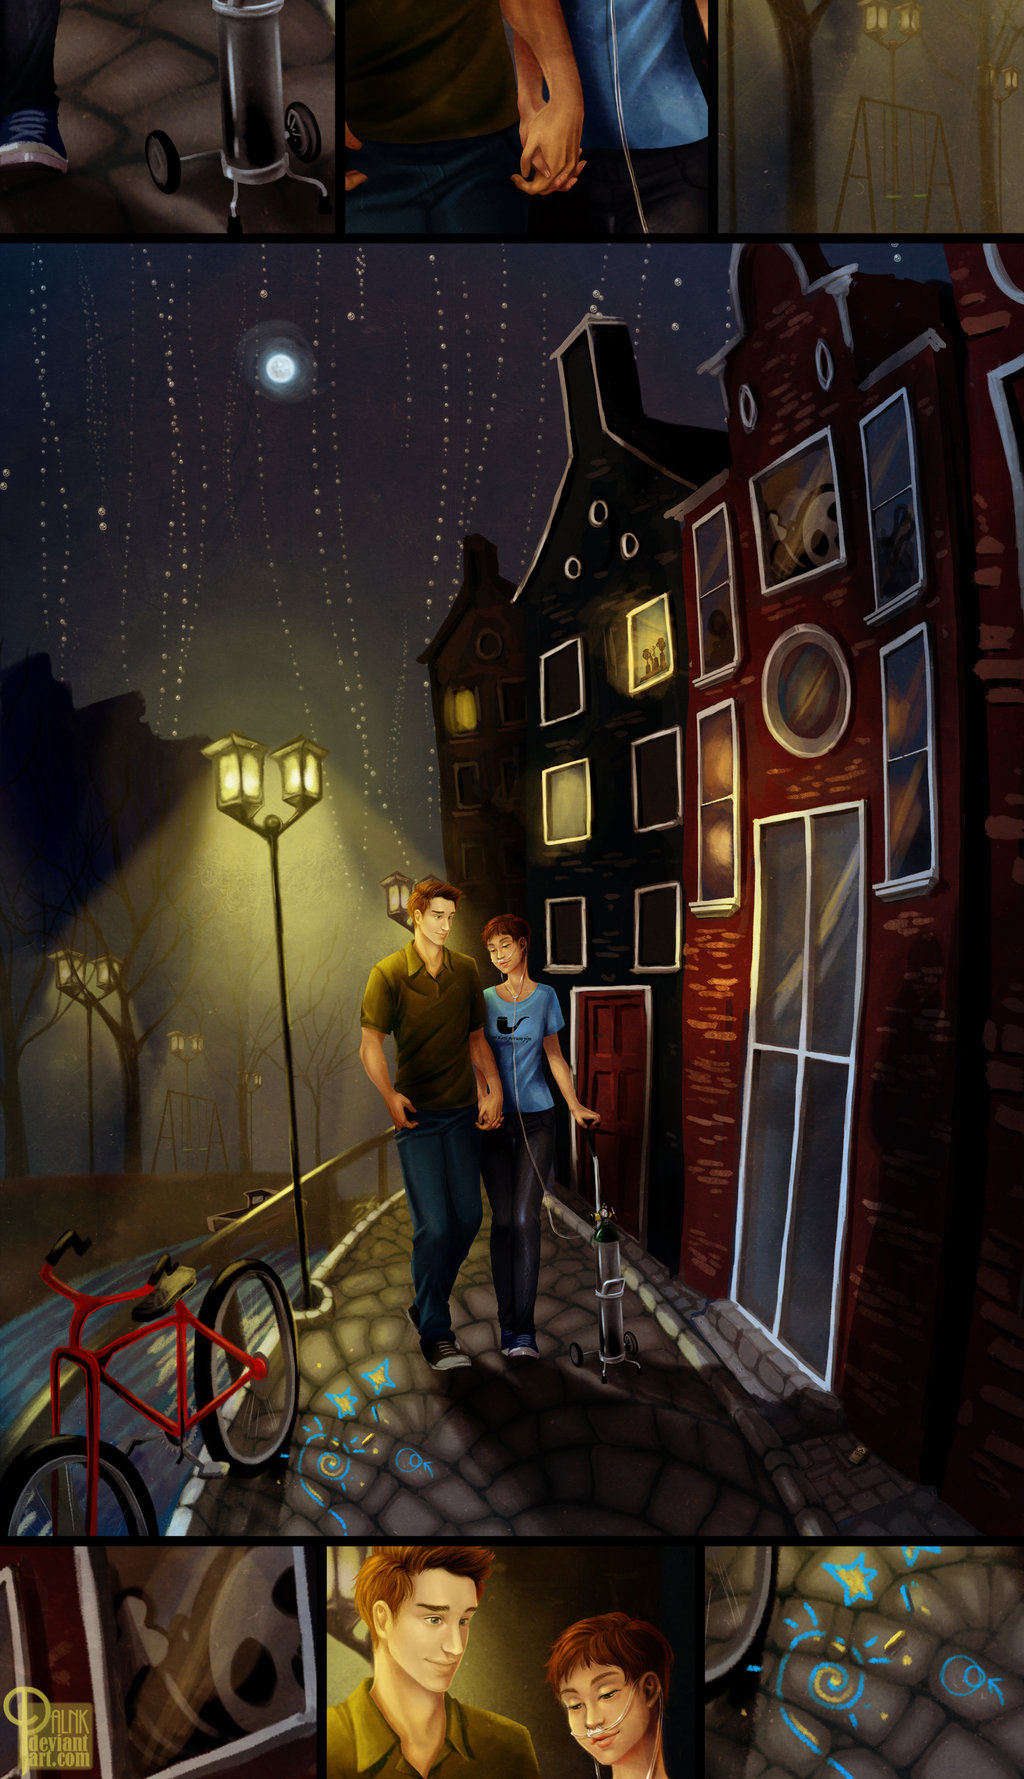 the_fault_in_our_stars_by_palnk-d5r21fo